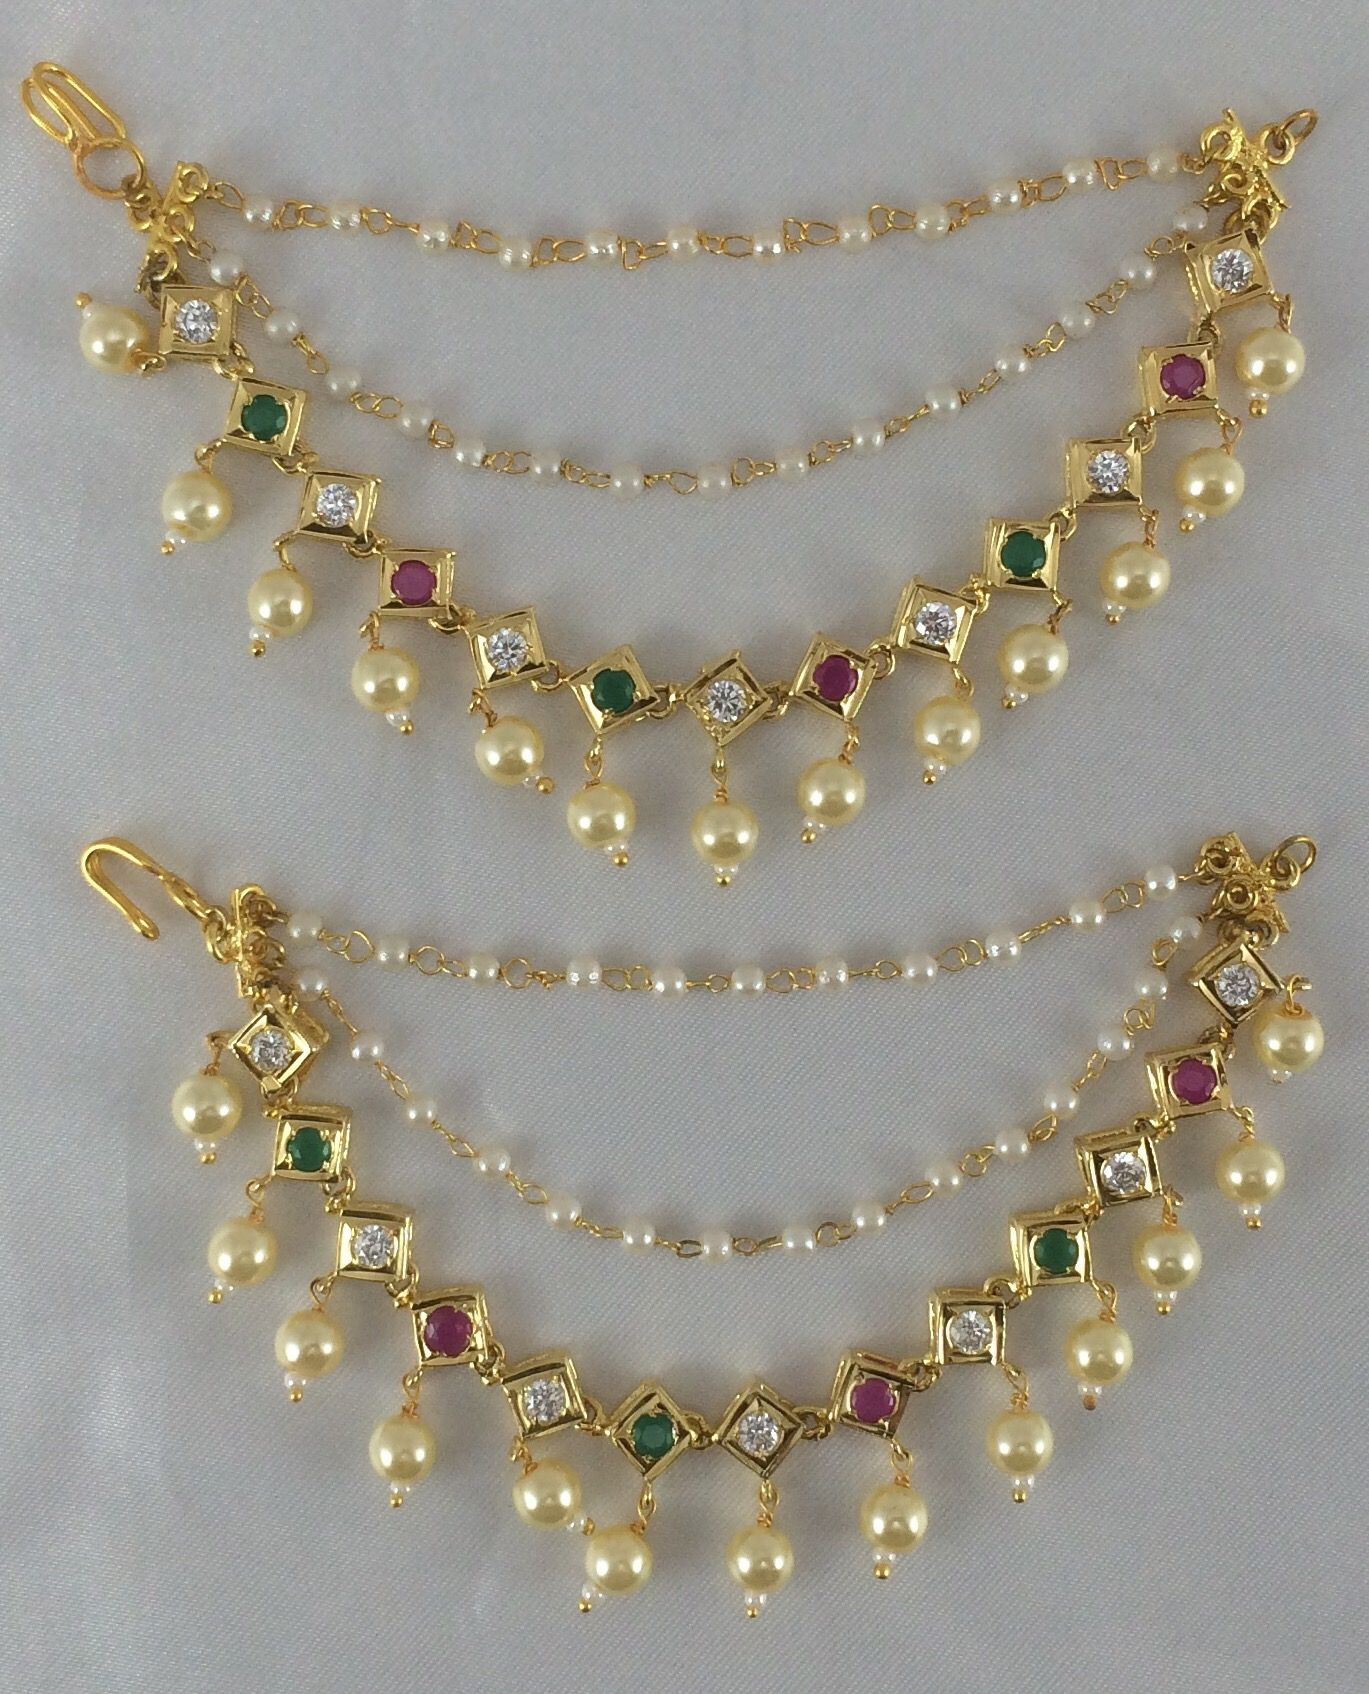 Related image | Bib necklaces | Pinterest | India jewelry, Jewel ...